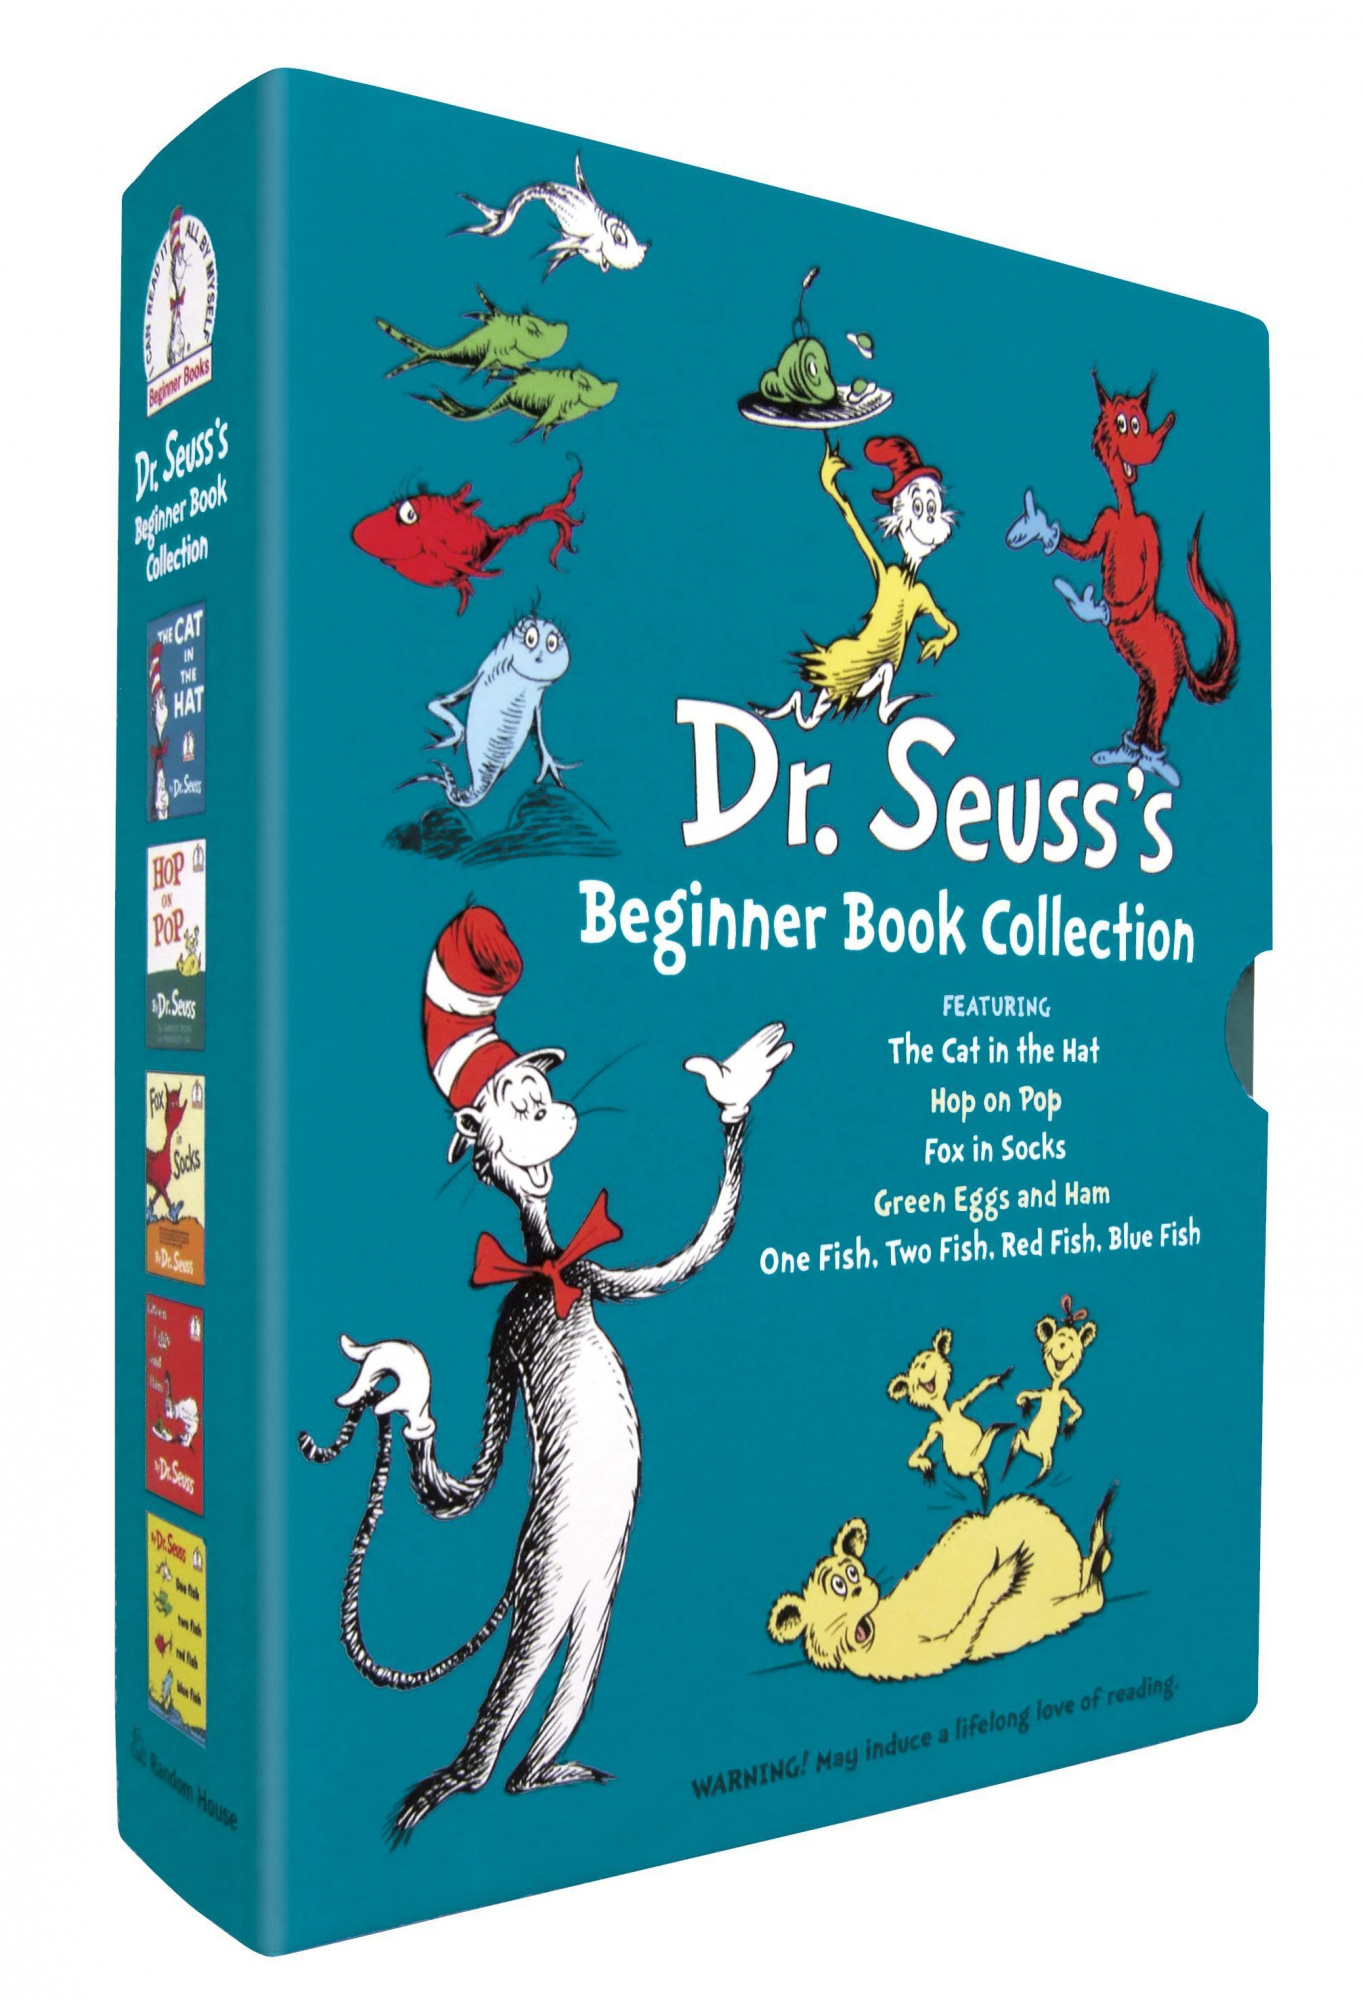 Dr. Seuss's Beginner Book Collection by Dr Seuss, ISBN: 9780375851568